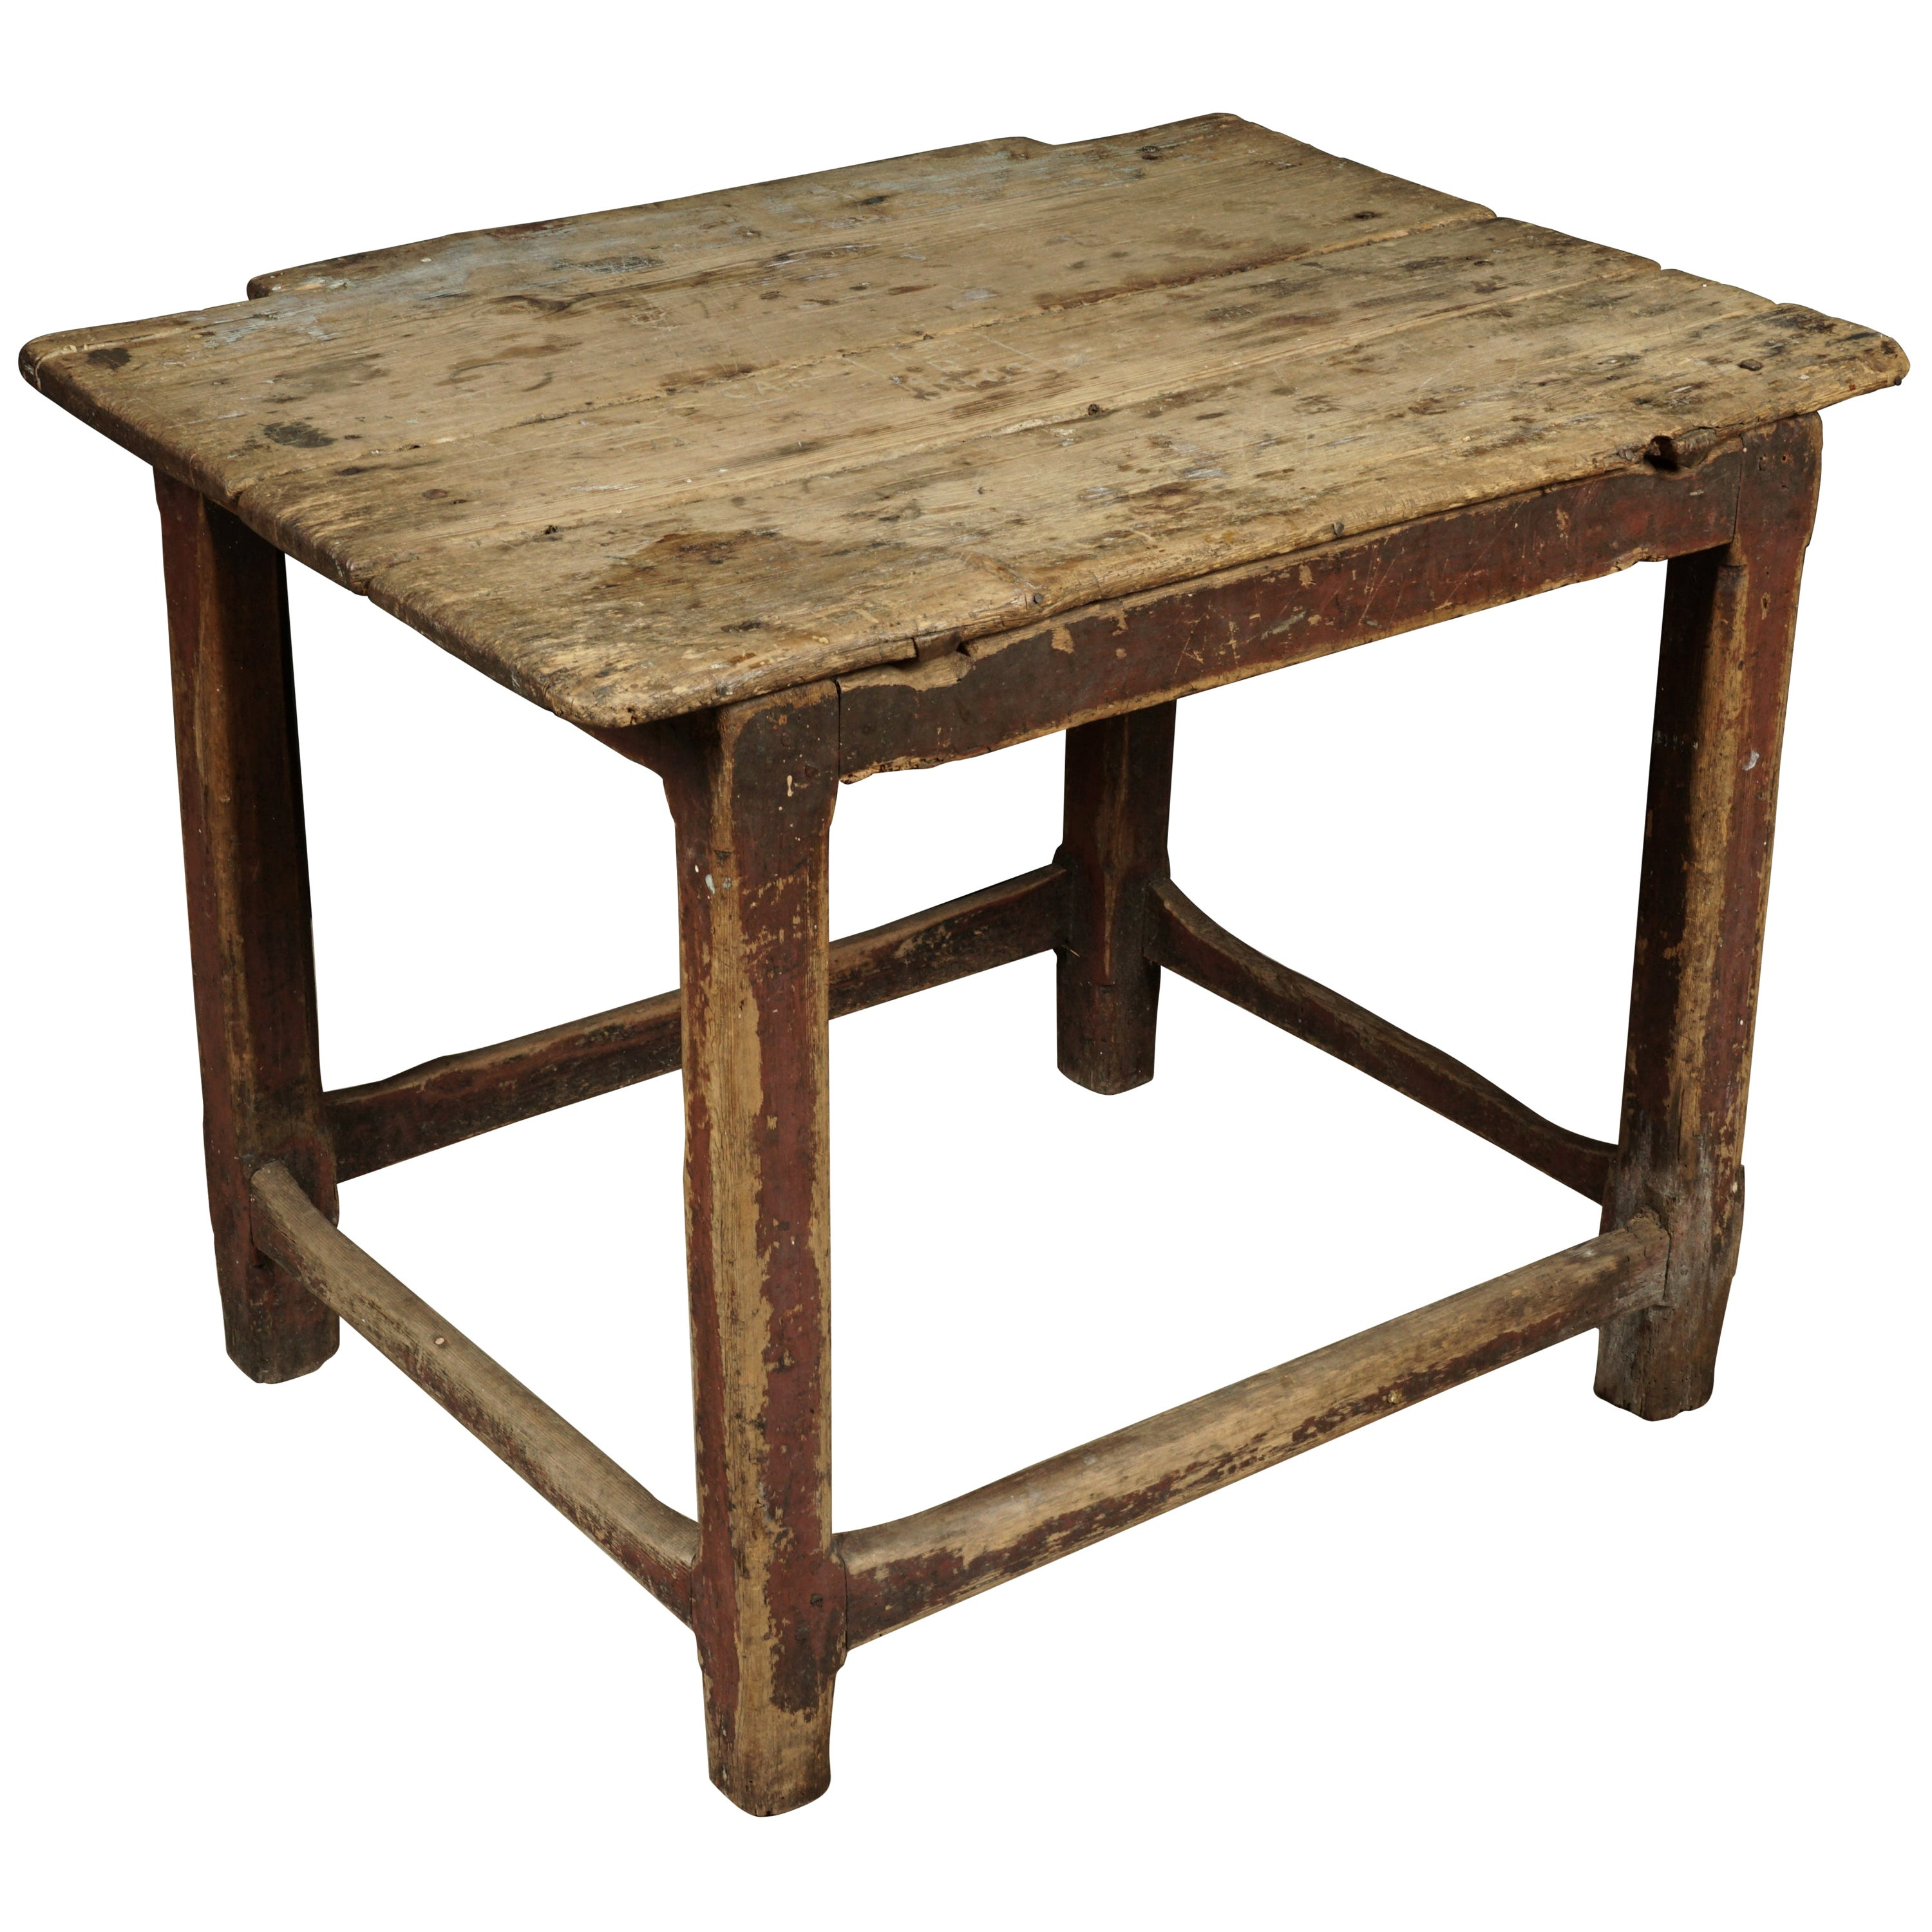 Primitive Coffee Table / Side Table from Reclaimed Antique Wood. For Sale at 1stDibs